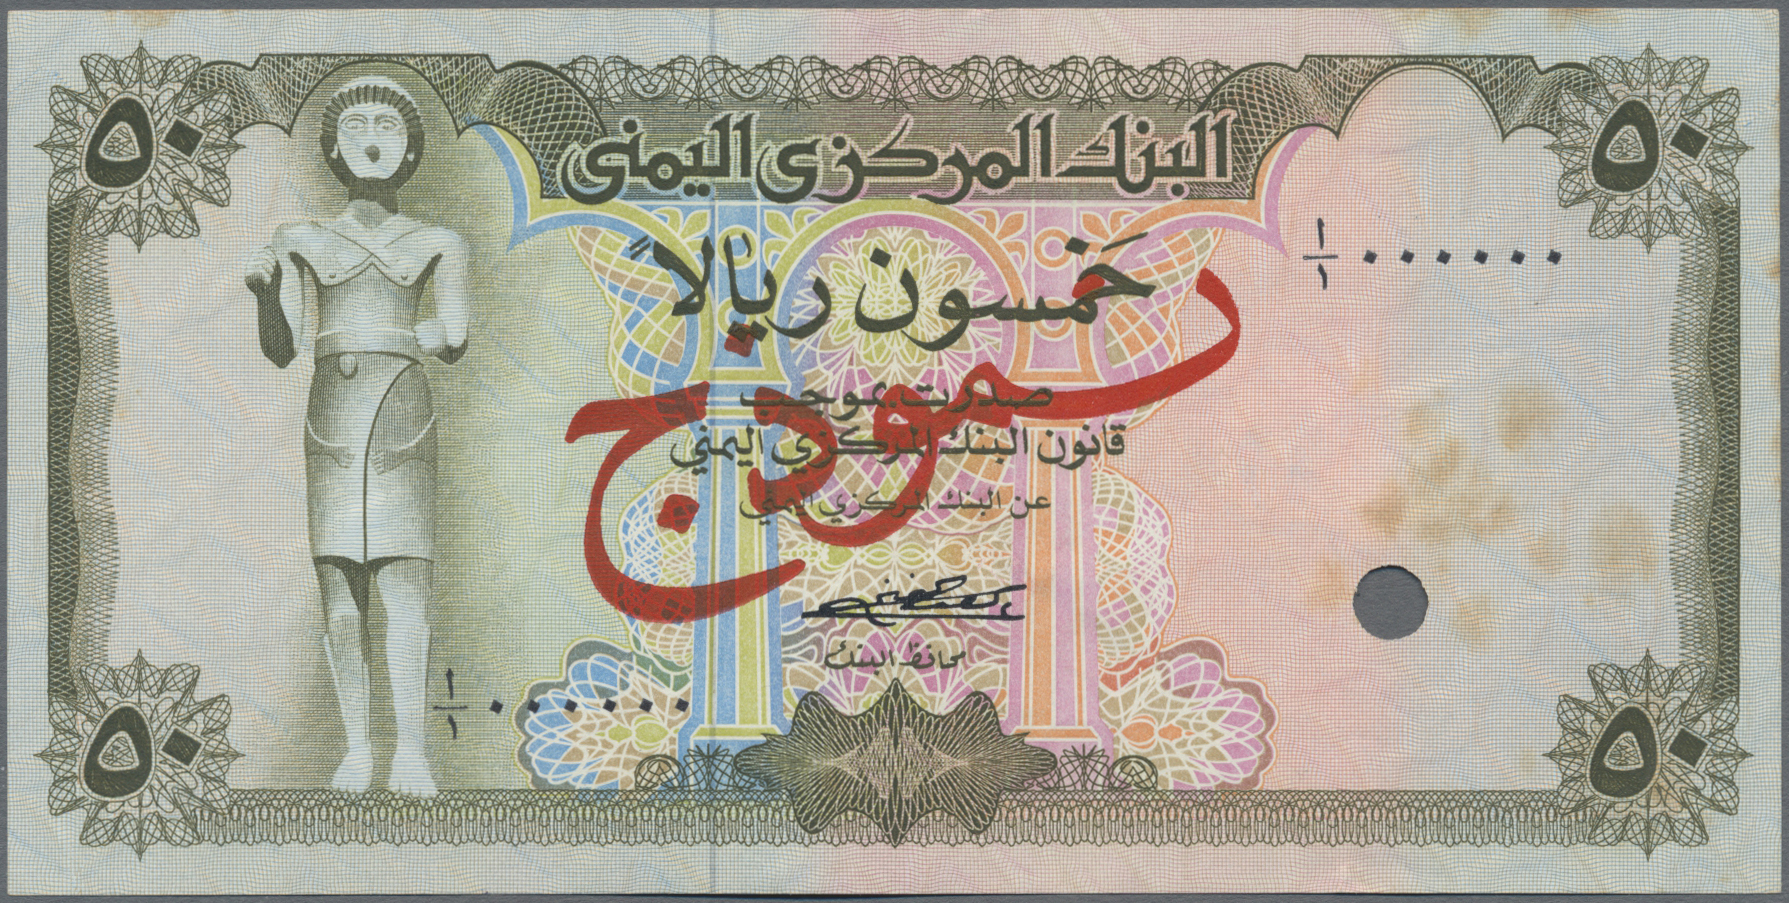 Lot 00927 - Yemen / Jemen | Banknoten  -  Auktionshaus Christoph Gärtner GmbH & Co. KG Sale #48 The Banknotes